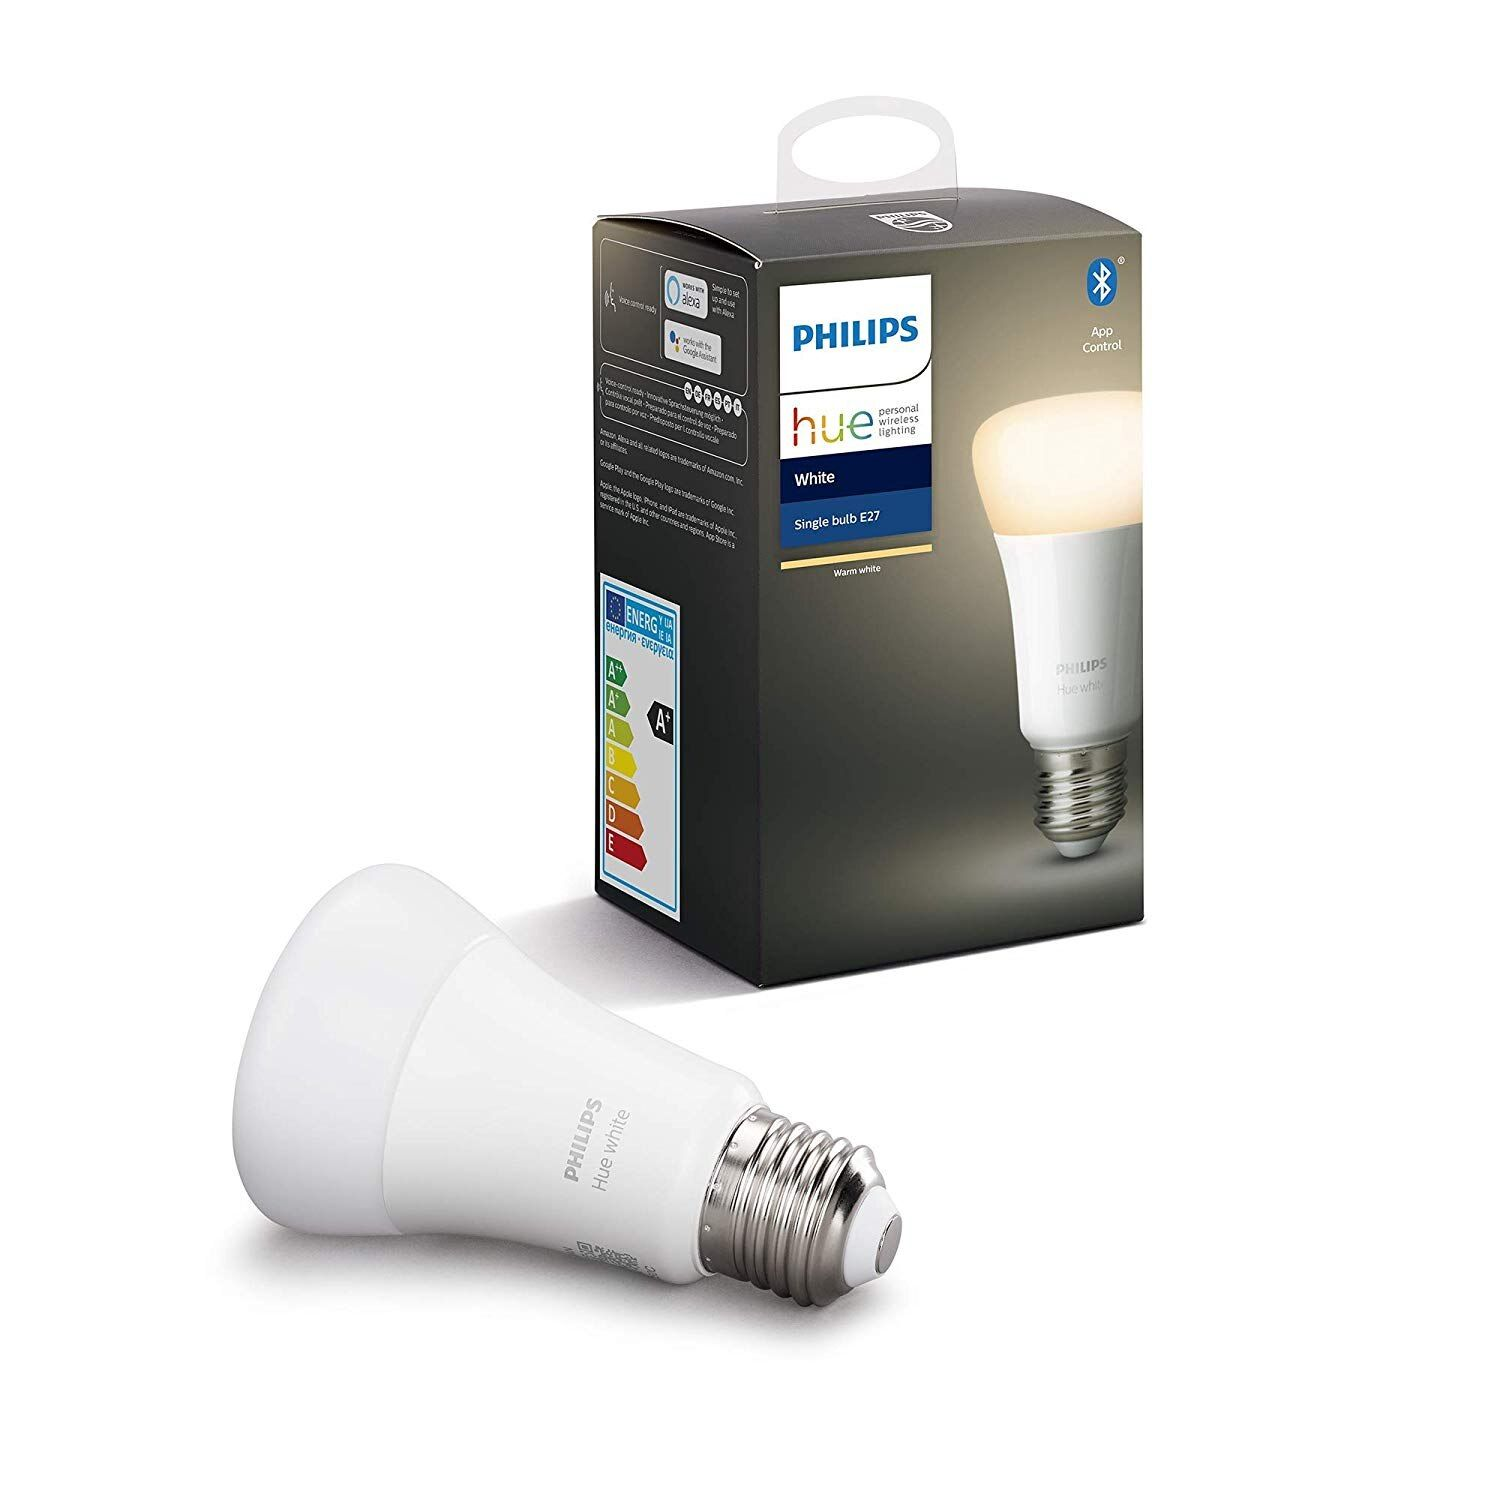 Philips Hue White Bombilla Led Inteligente E27 Luz Blanca Calida Attention Valid Discount 0 Buy Now For 19 95 V 2020 G